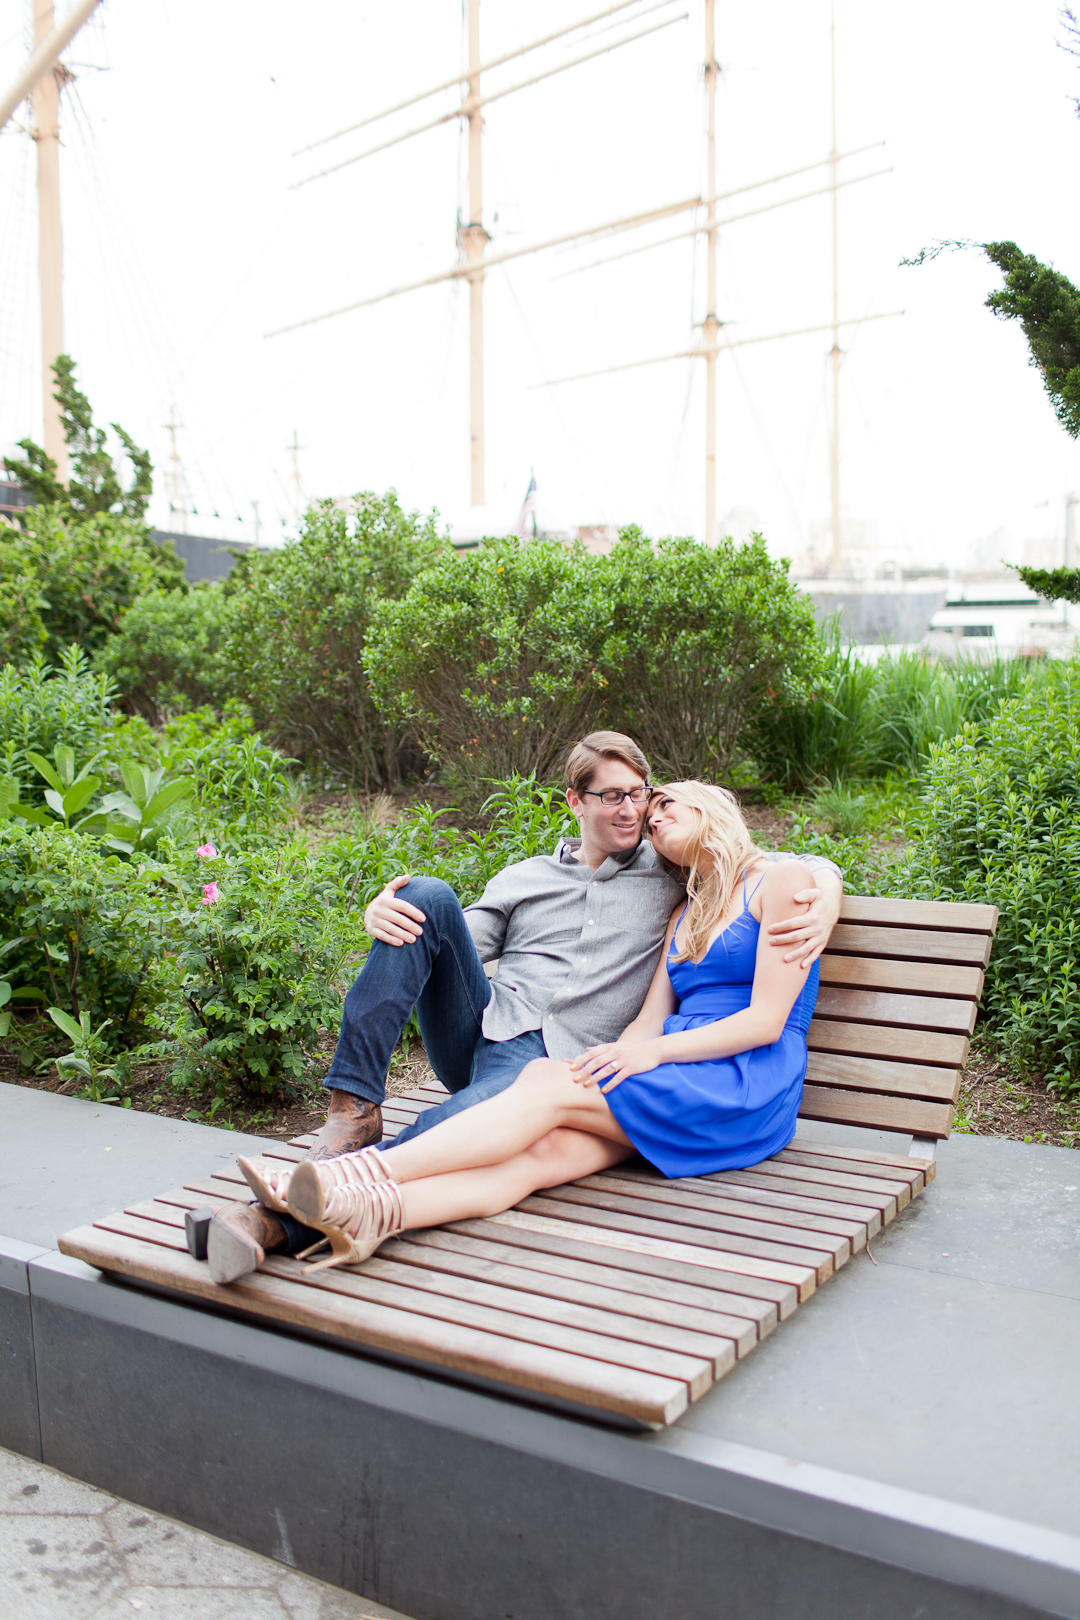 Melissa Kruse Photography - Kelley & Billy Engagement Photos-79.jpg